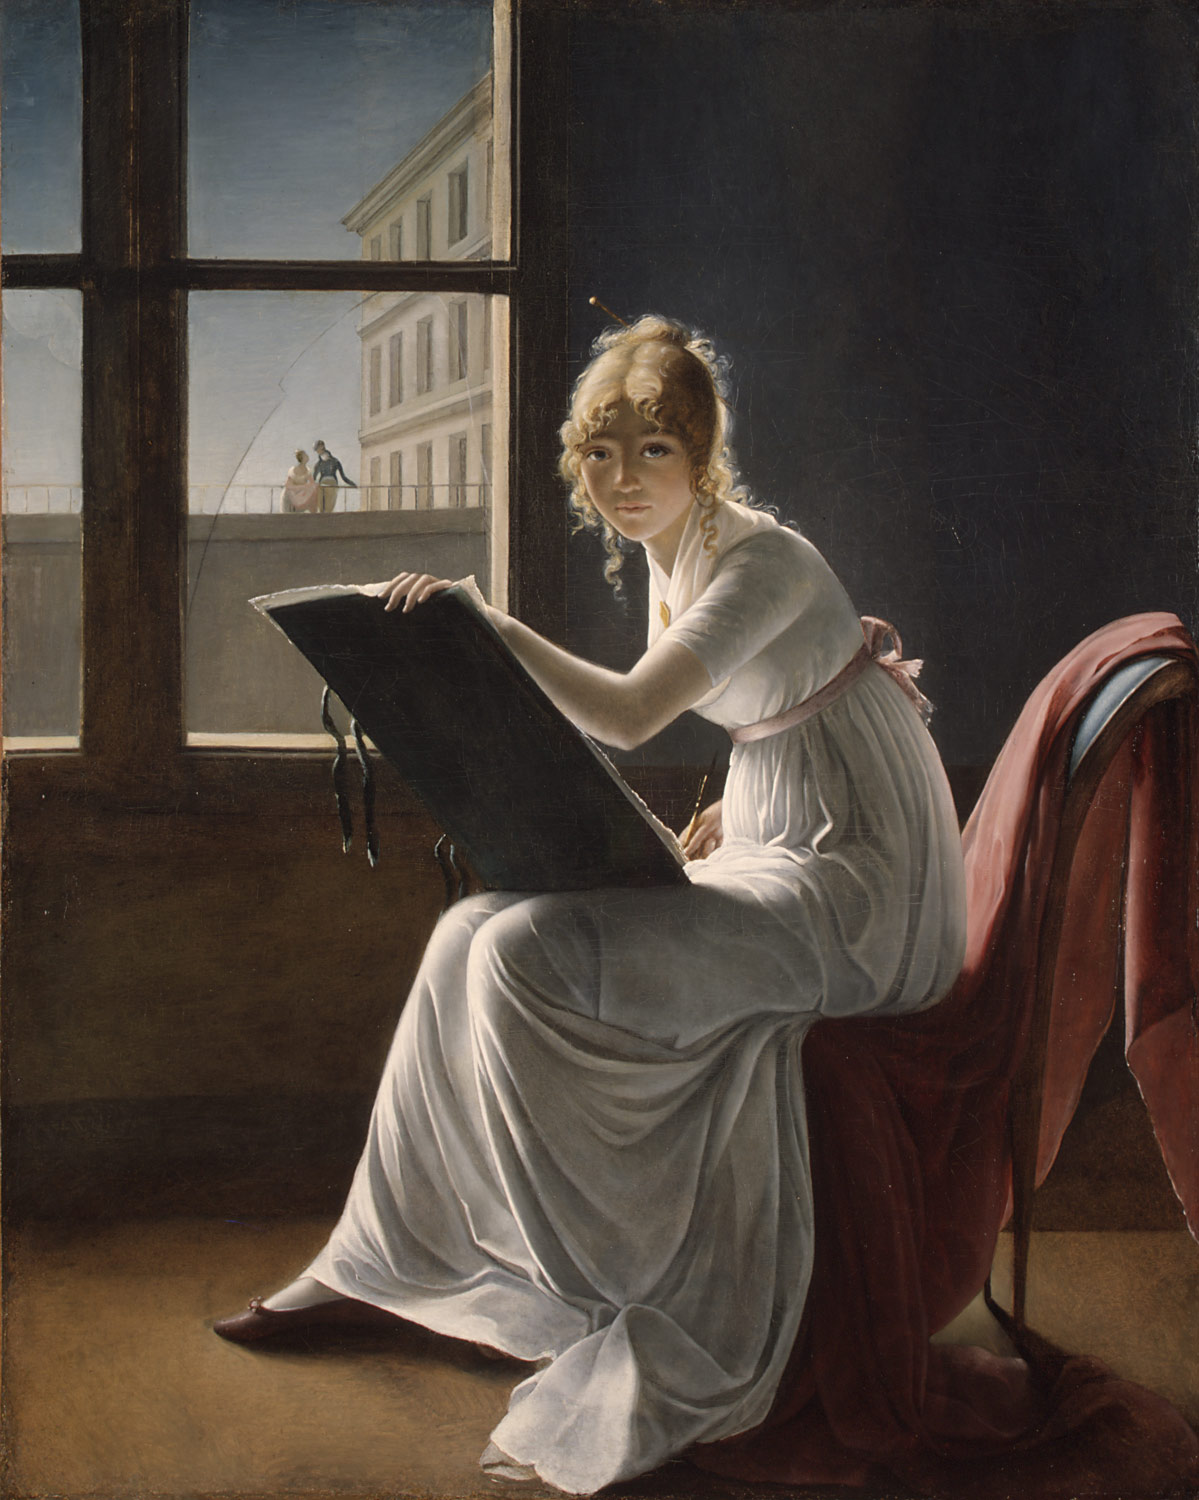 eighteenth century women painters in essay heilbrunn w painter middot charlotte du val dognes died 1868